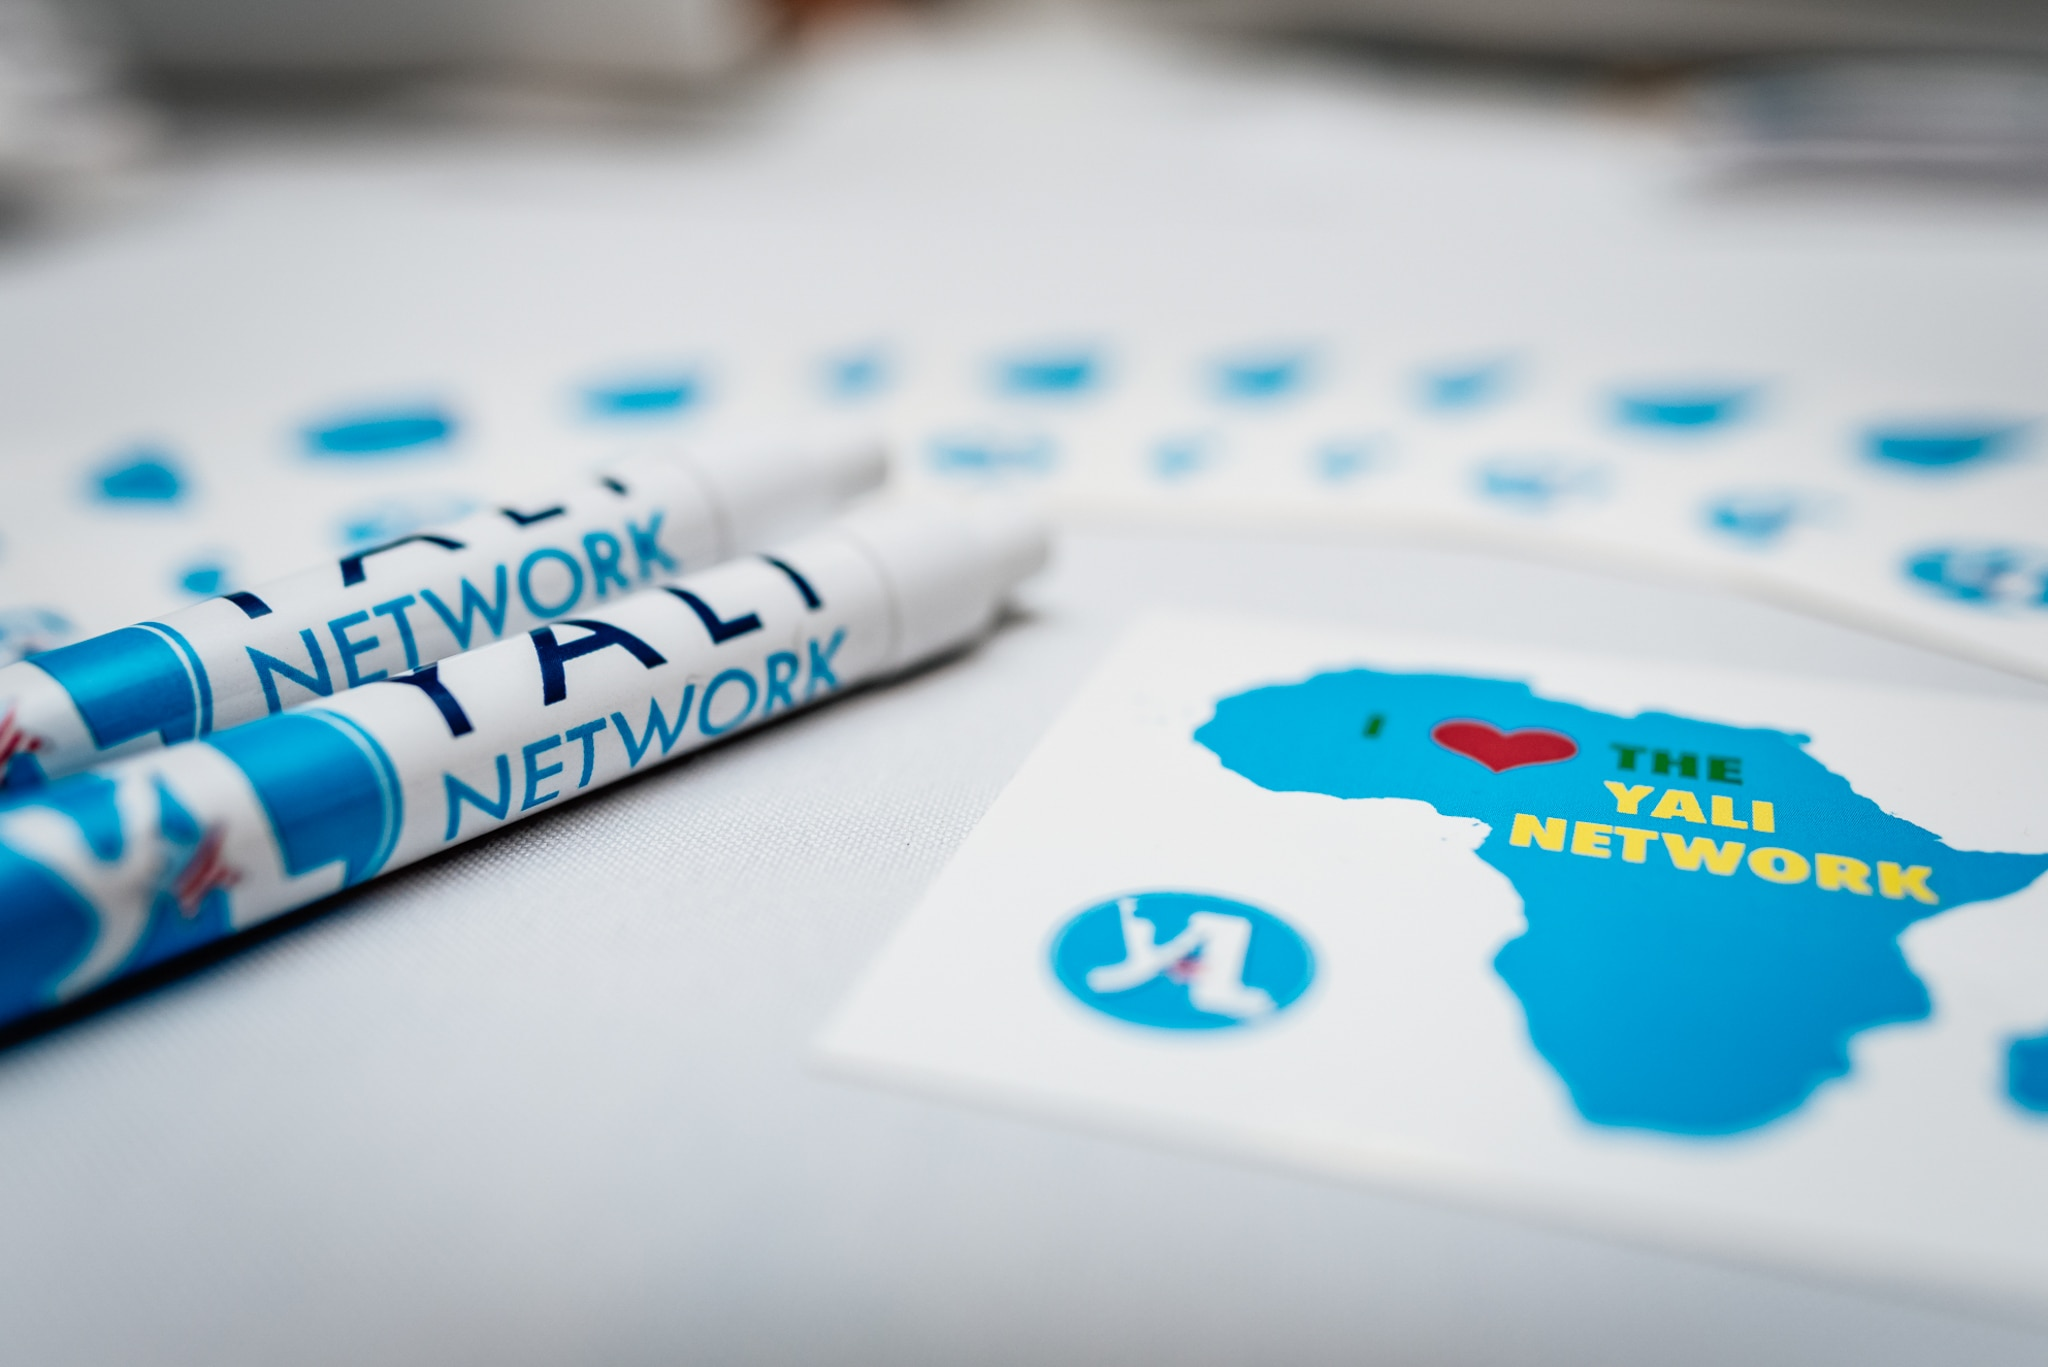 YALI Network pens and stickers (State Dept./D. Durazo)